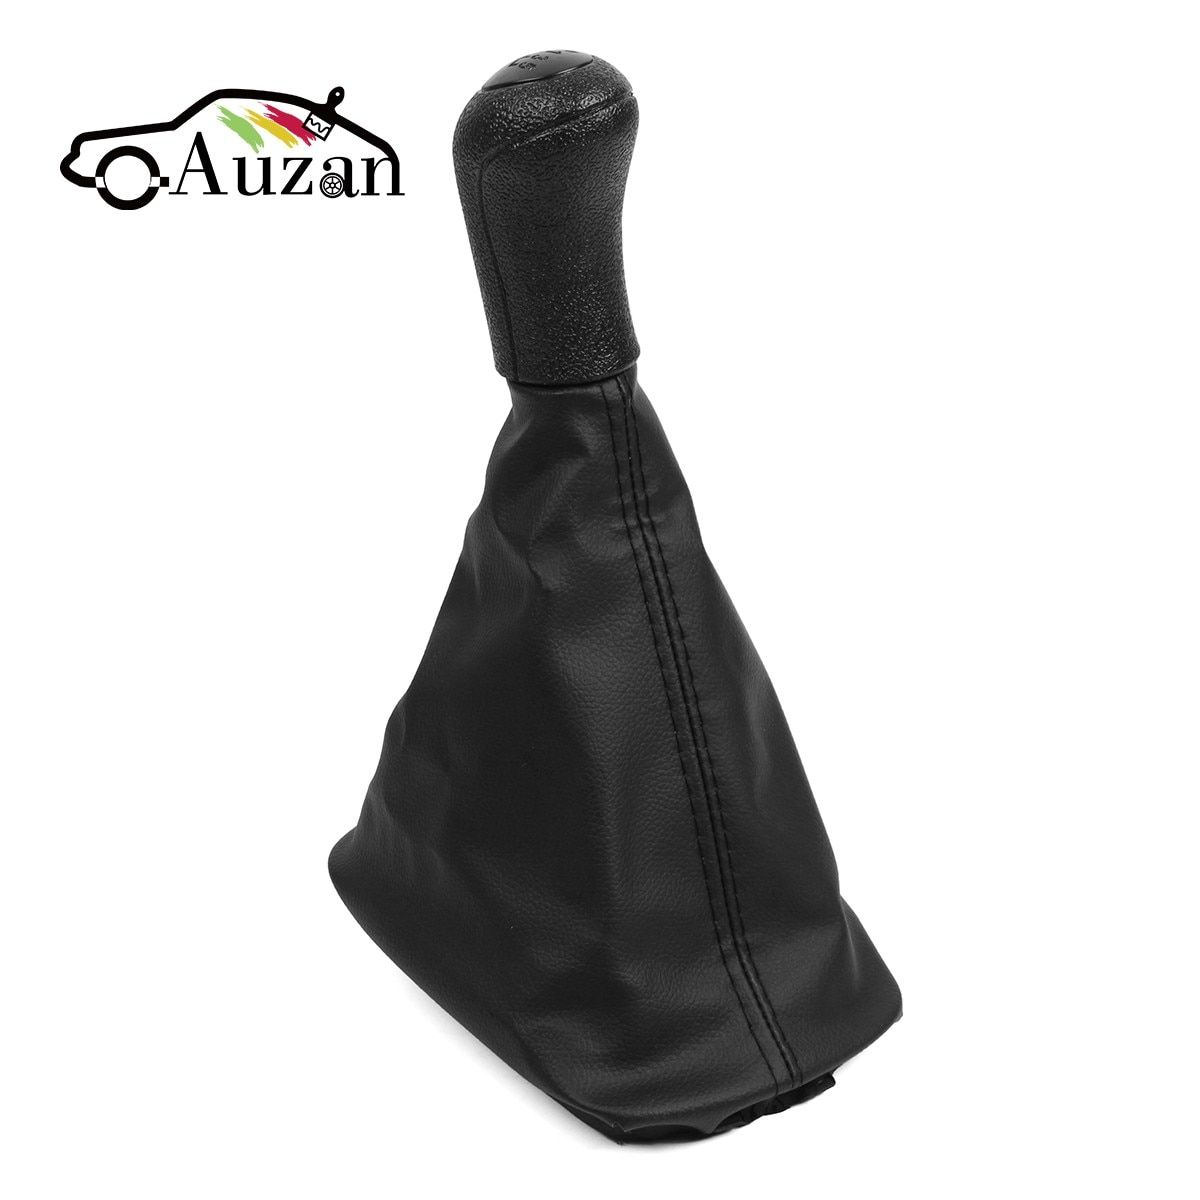 for Skoda Octavia A4 5 Speed Gear Shift Knob With Holster Black Cover 1997-2010